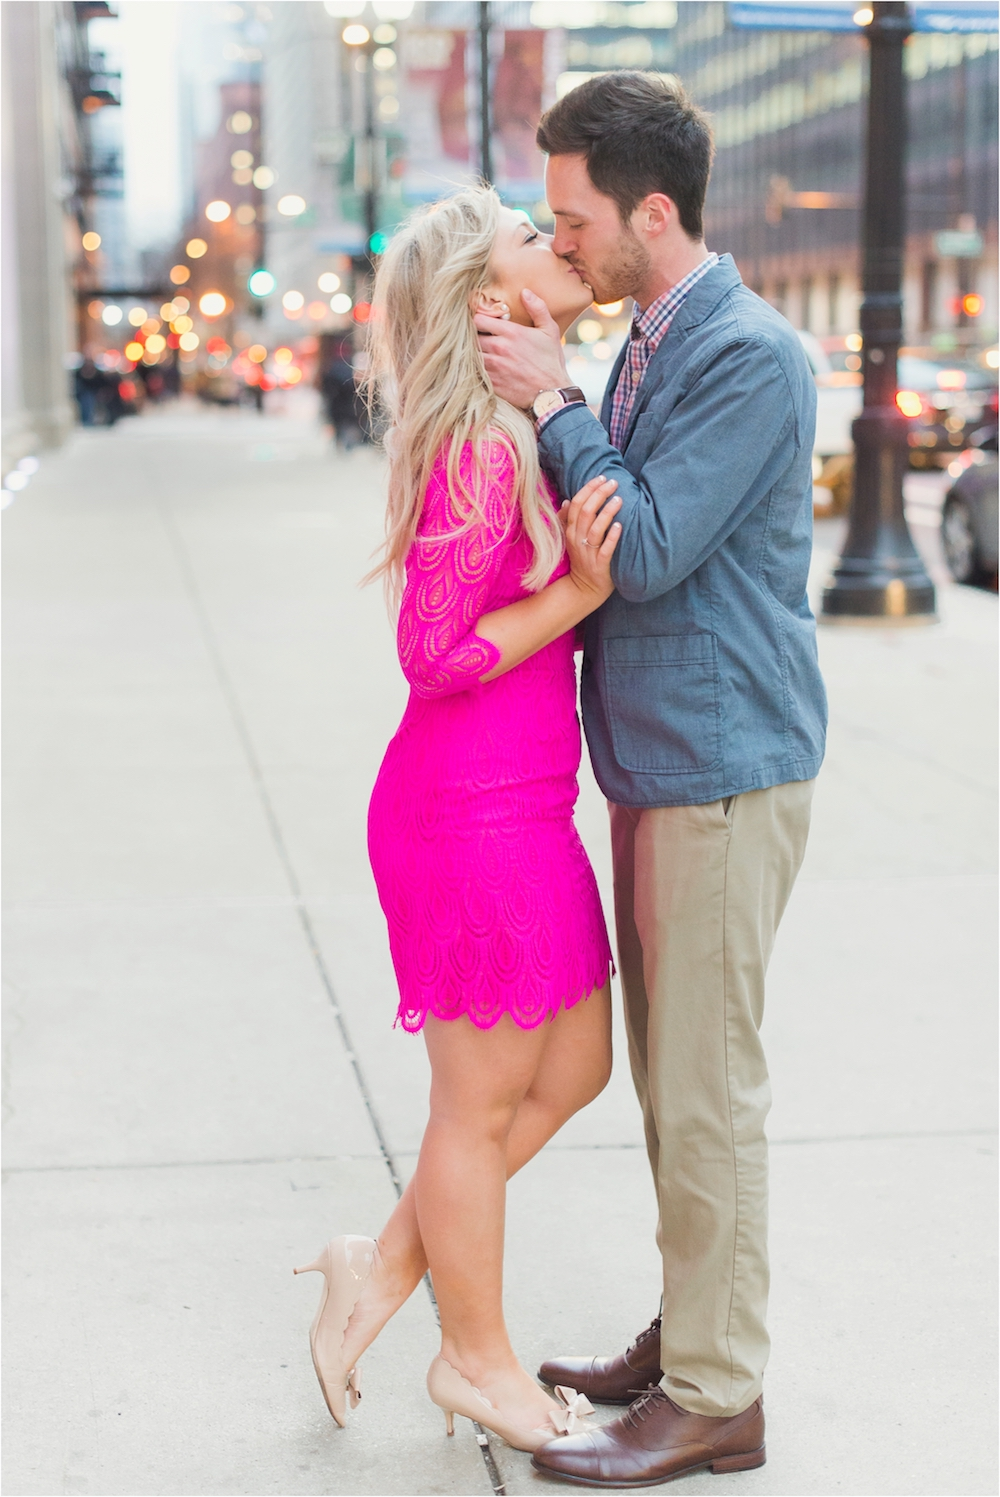 union-station-downtown-chicago-illinois-city-streets-engagement-photo-72.jpg